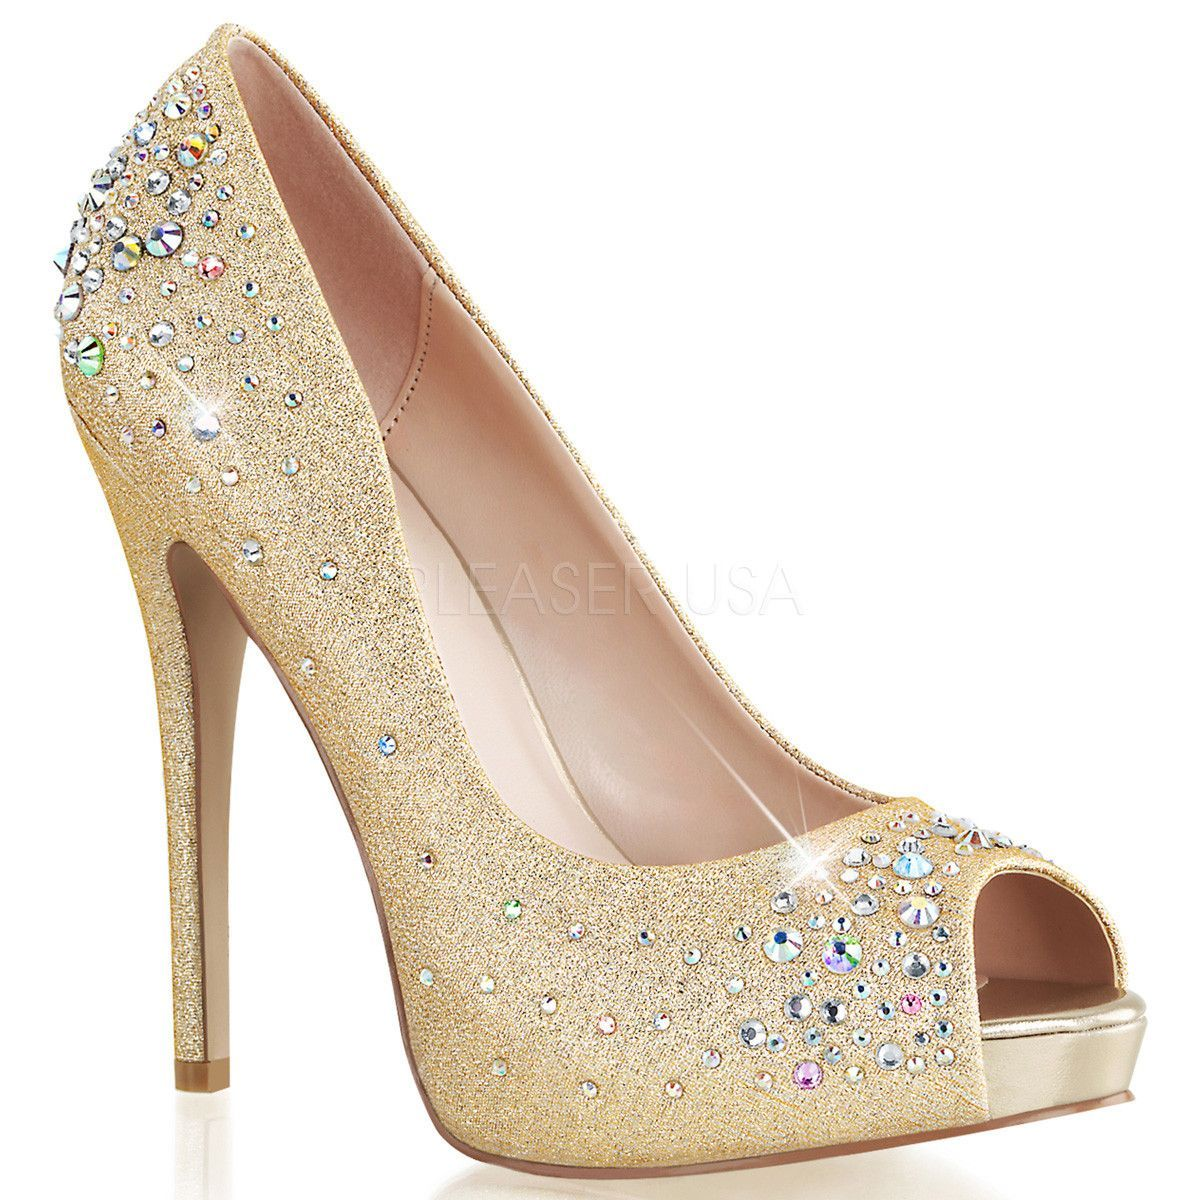 5924256f4cd3 FABULICIOUS HEIRESS-22R Nude Shimmering Fabric Peep Toe Pumps ...